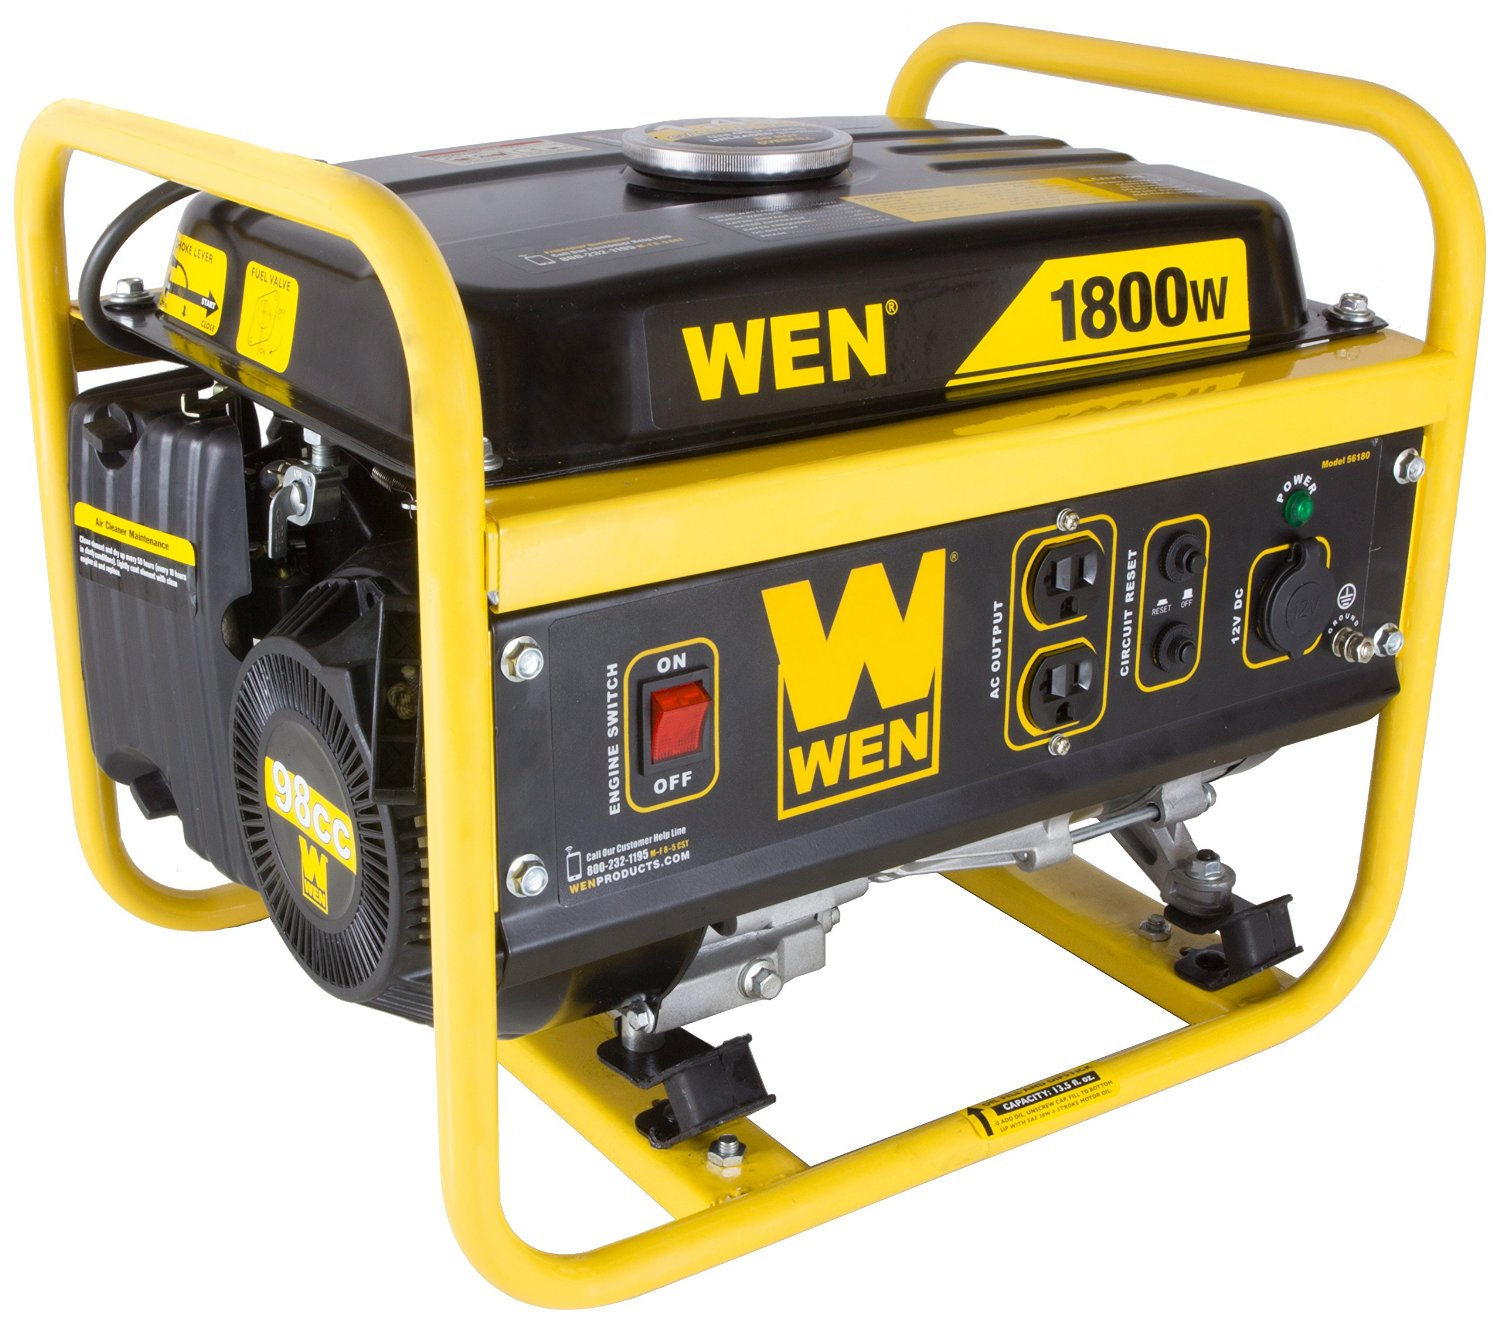 WEN 56180, 1500 Running Watts/1800 Starting Watts, Gas Powered Portable Generator